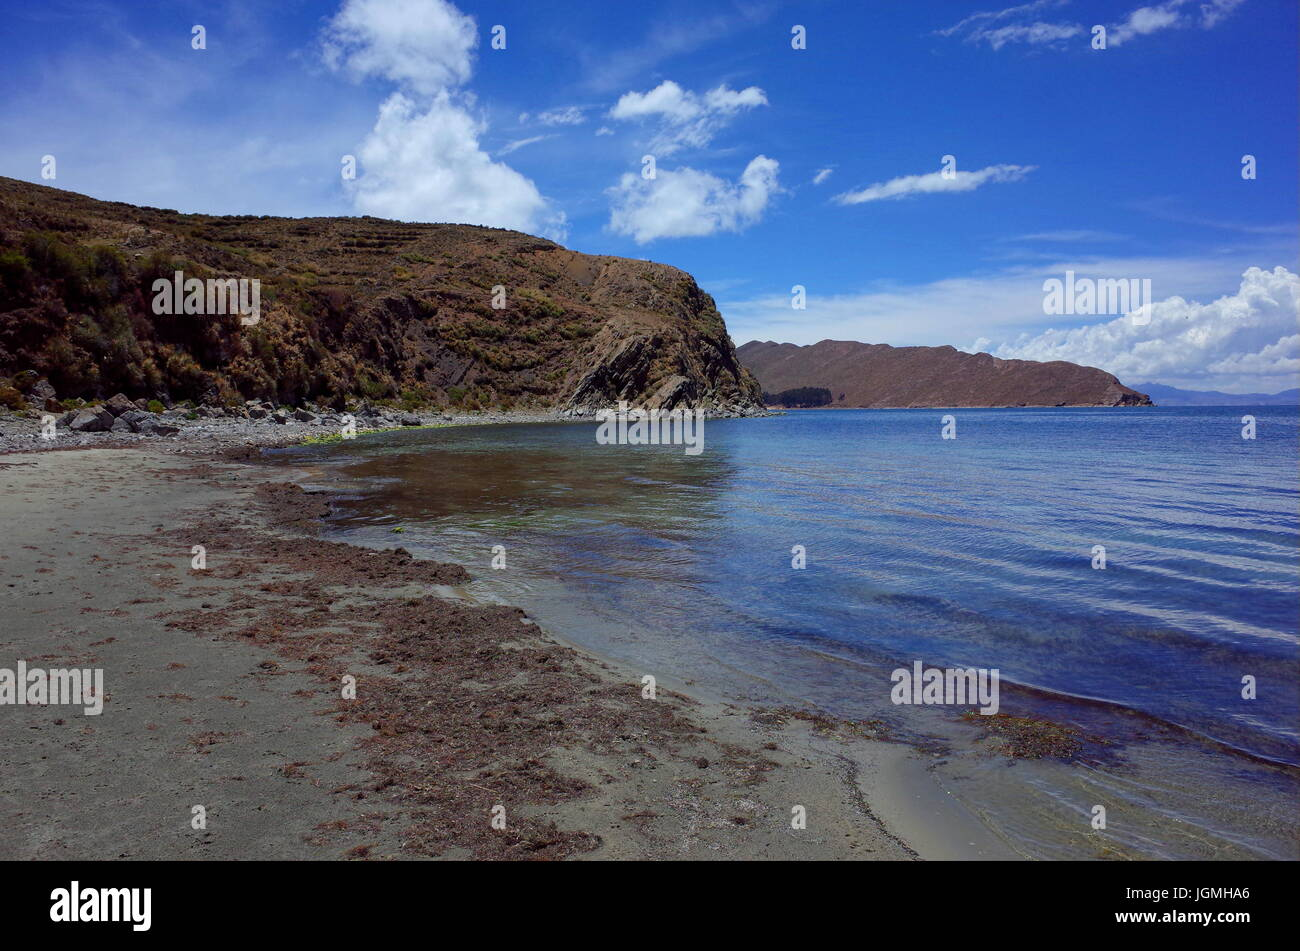 Breath taking view of a beach on the Isla Del Sol on Lake Titicaca - Stock Image